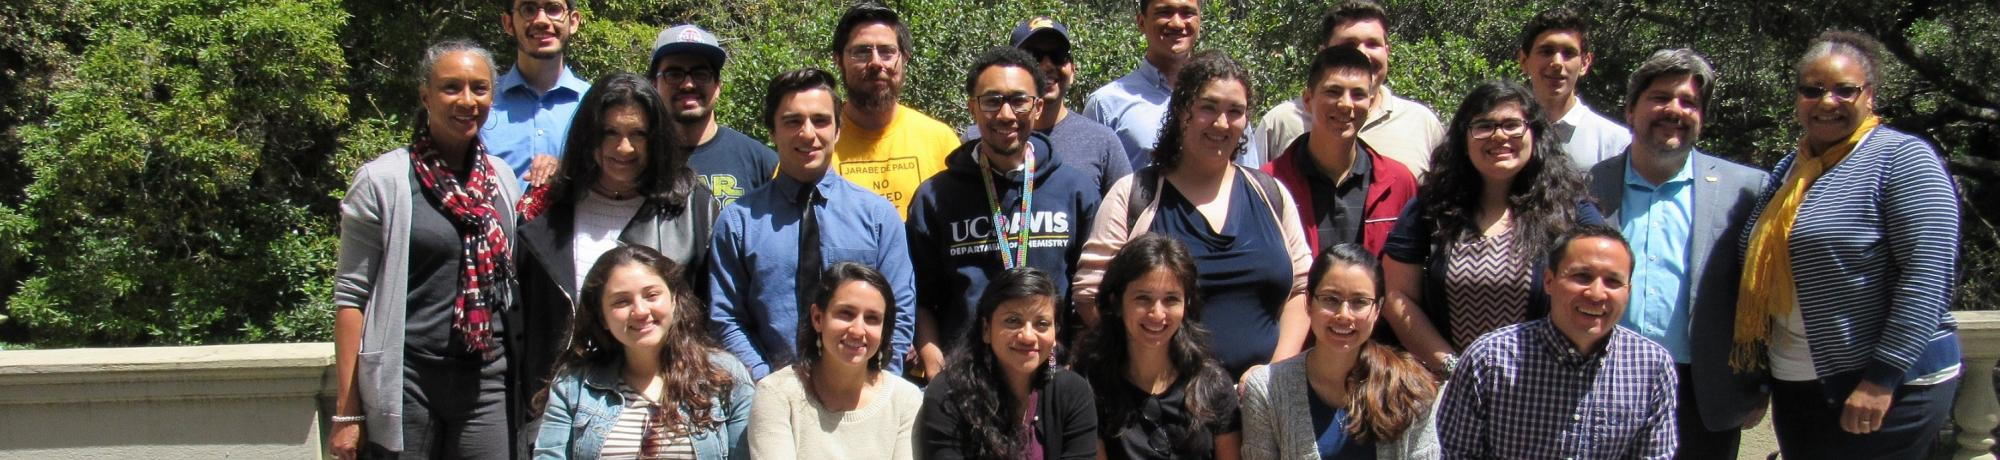 Out door group photo of UC Davis Undergraduate researchers from a field trip to Berkeley